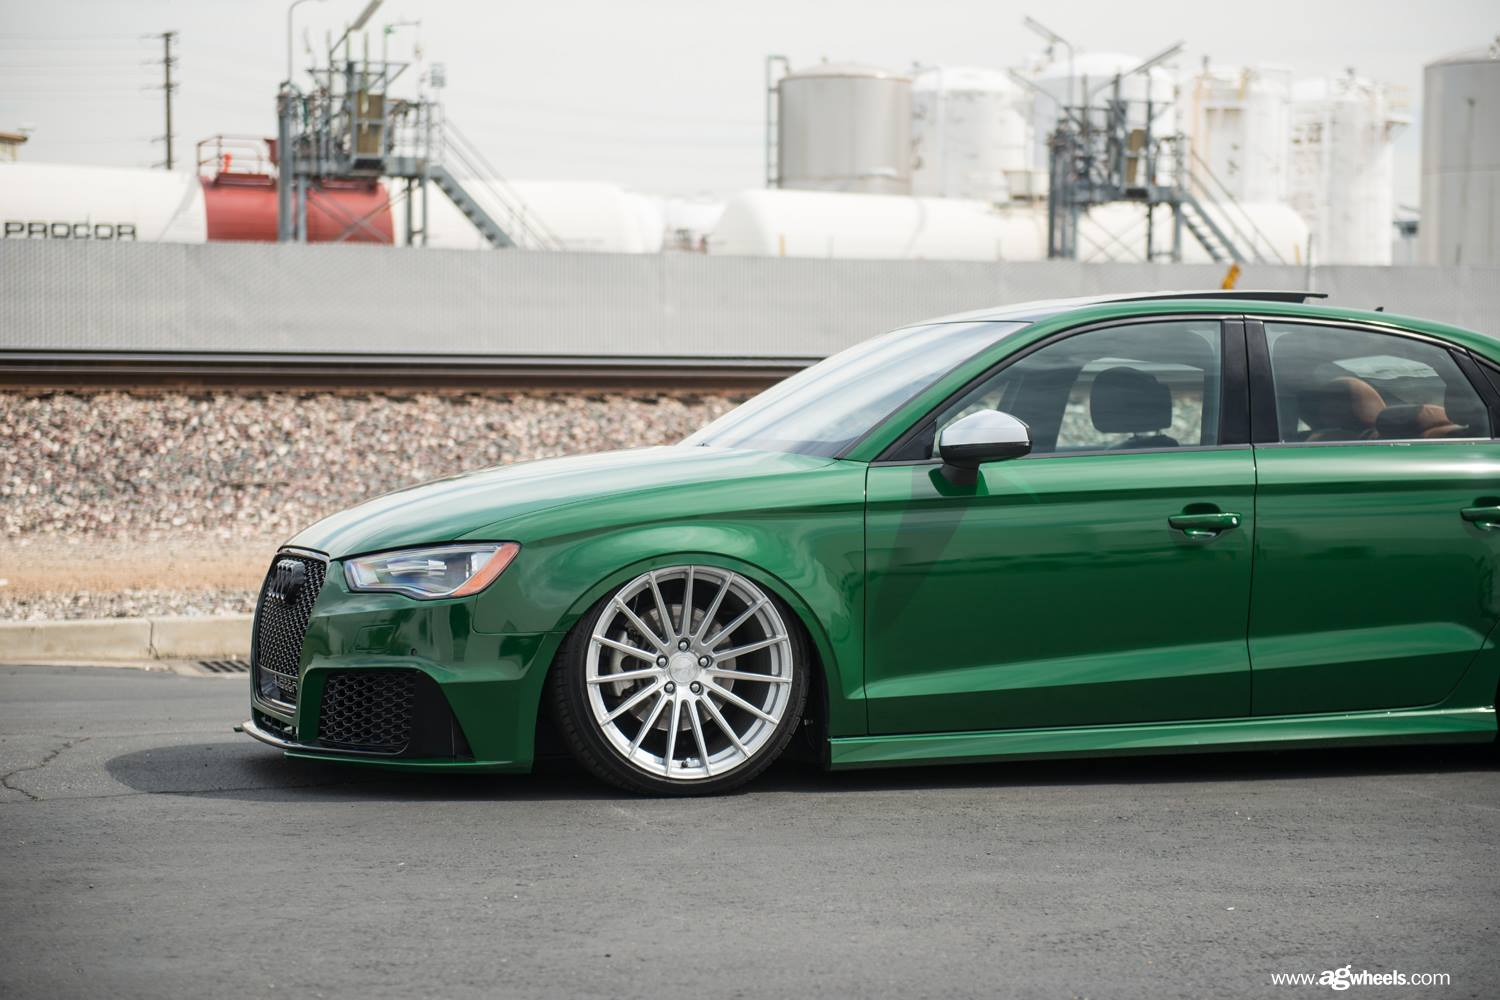 Audi A3 Sedan Custom >> Green Audi A3 Has RS3 Bumper, Cool Stance and Trunk Spoiler - autoevolution